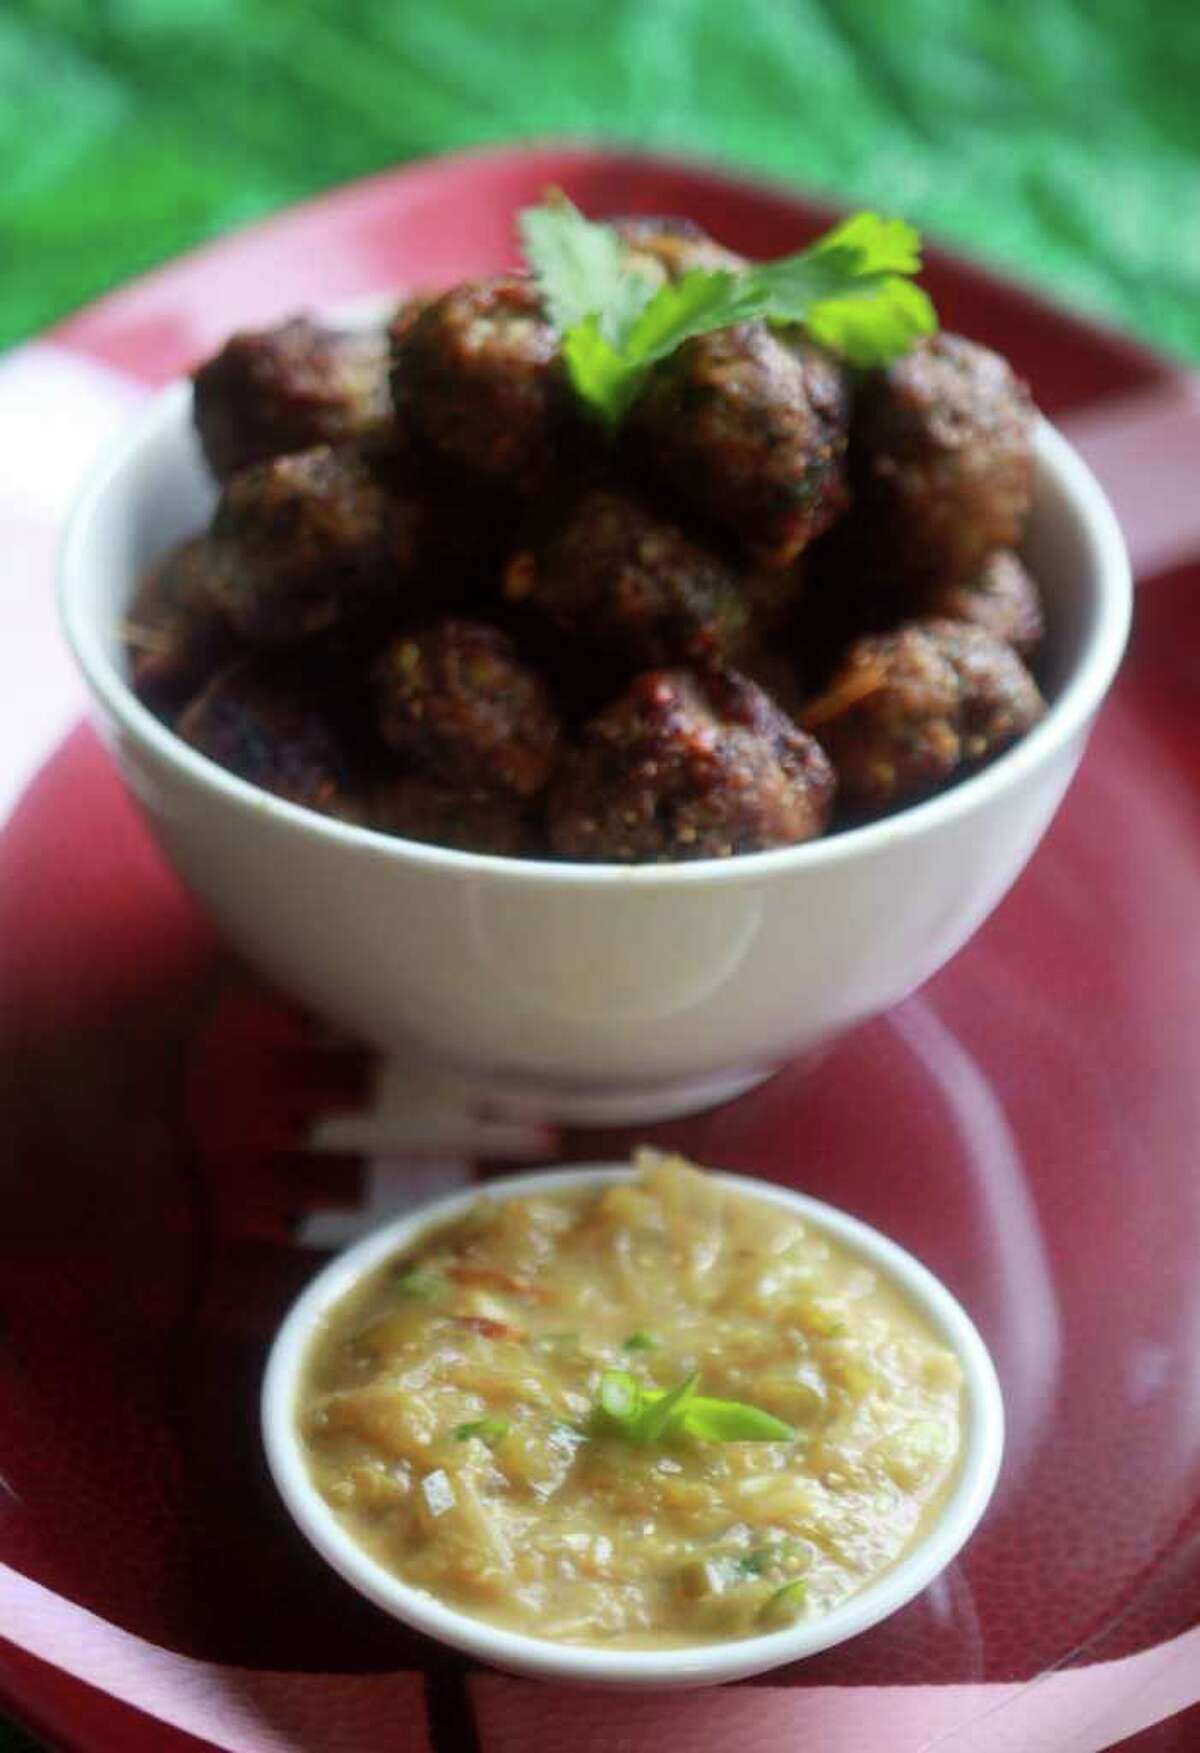 Chicken verde meatballs makes a healthier party snack than traditional meatballs. (Regina H. Boone Detroit Free Press/MCT)